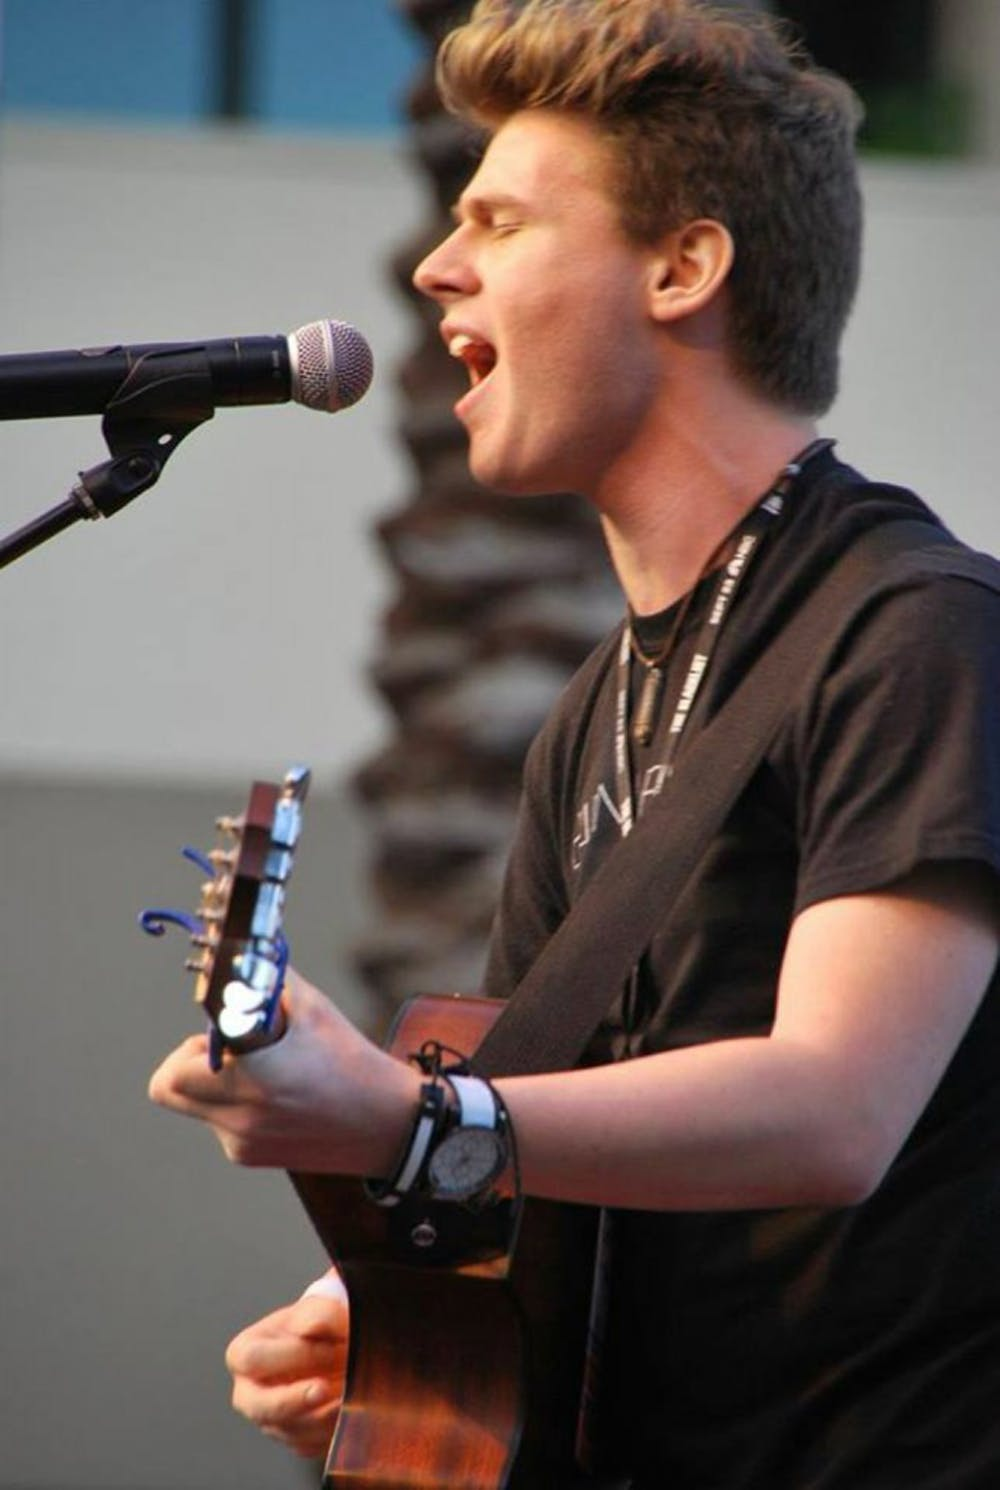 <p>19-year-old pop singer Tyler Matl will be performing at OMG Music Fest at Cat's Cradle in Carrboro tonight.</p>